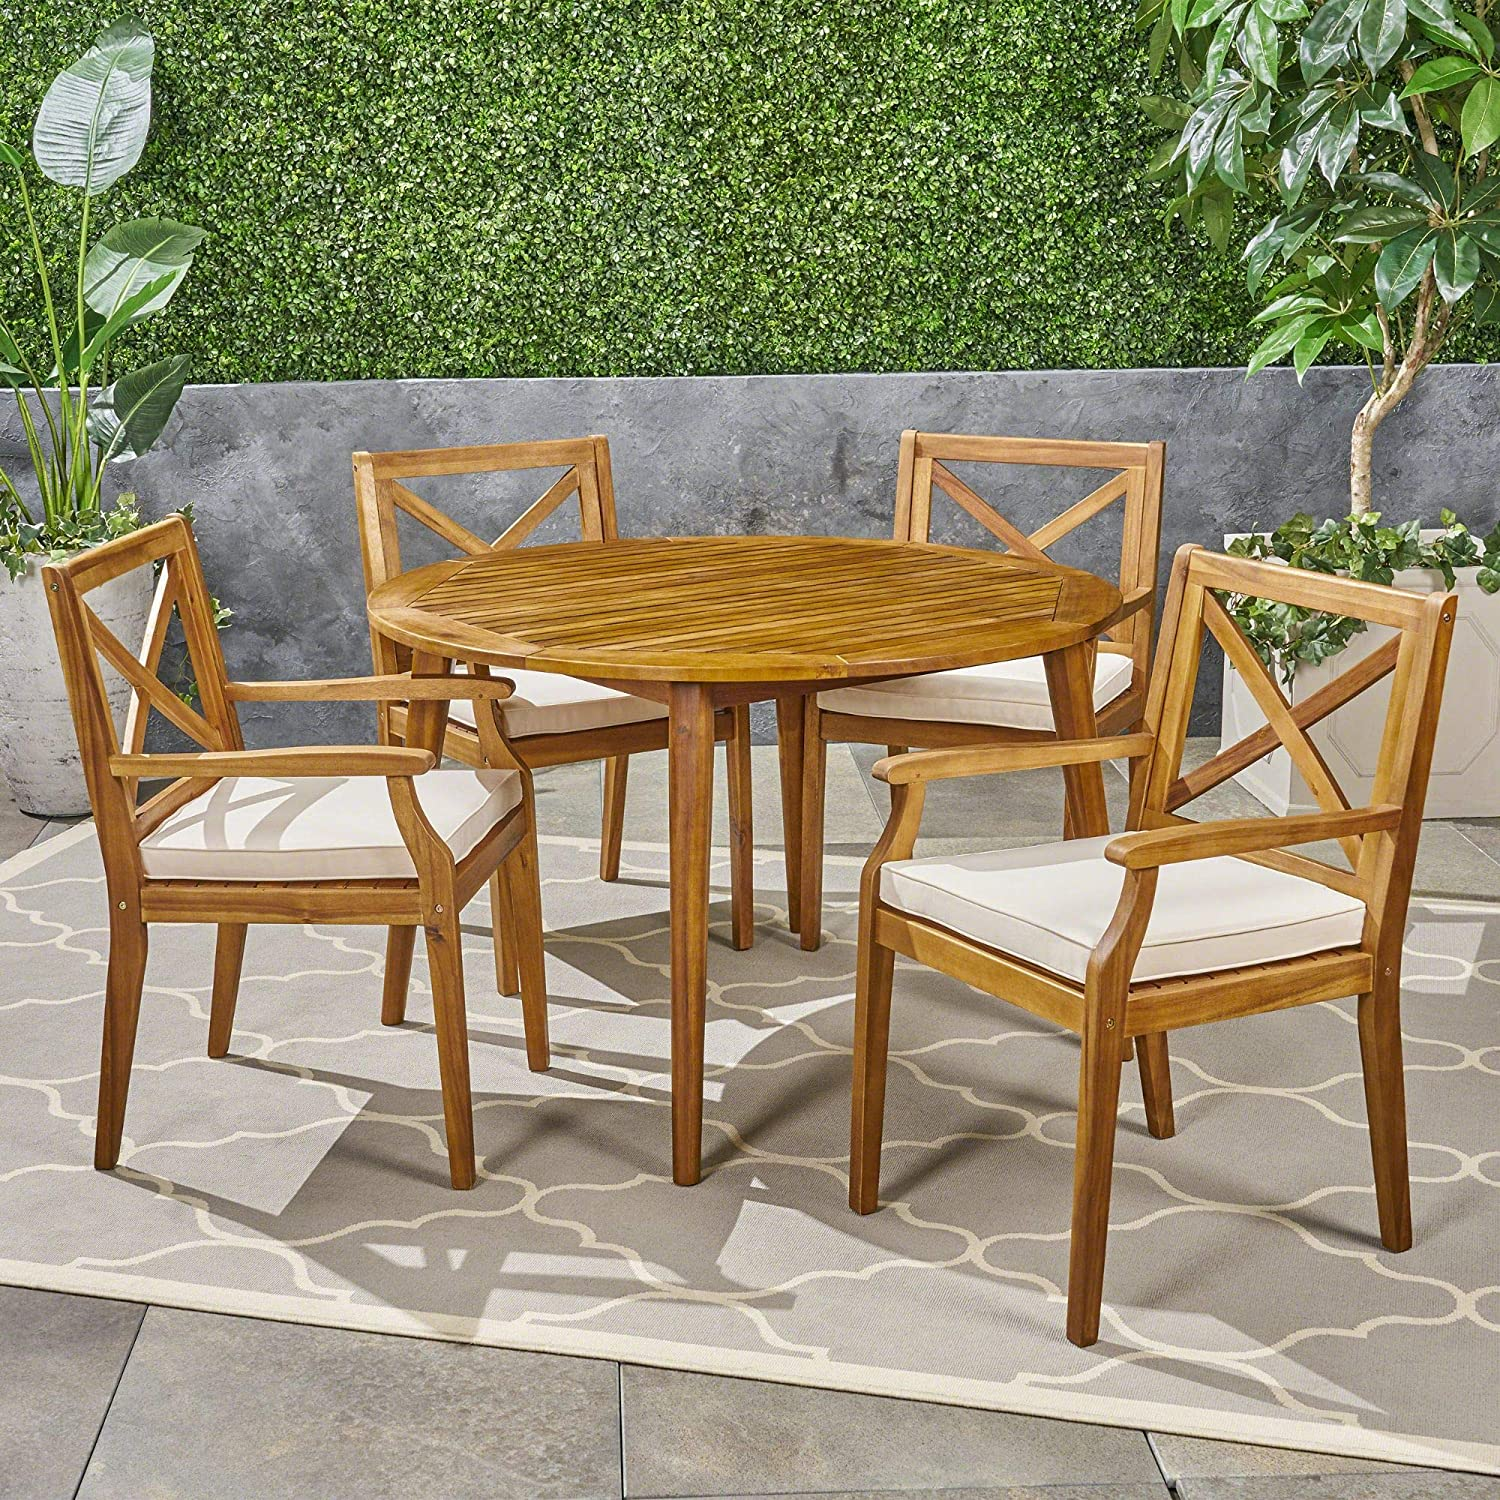 Contemporary Home Living 5-Piece Brown Finish quality assurance Round Free shipping anywhere in the nation Outdoor Teak